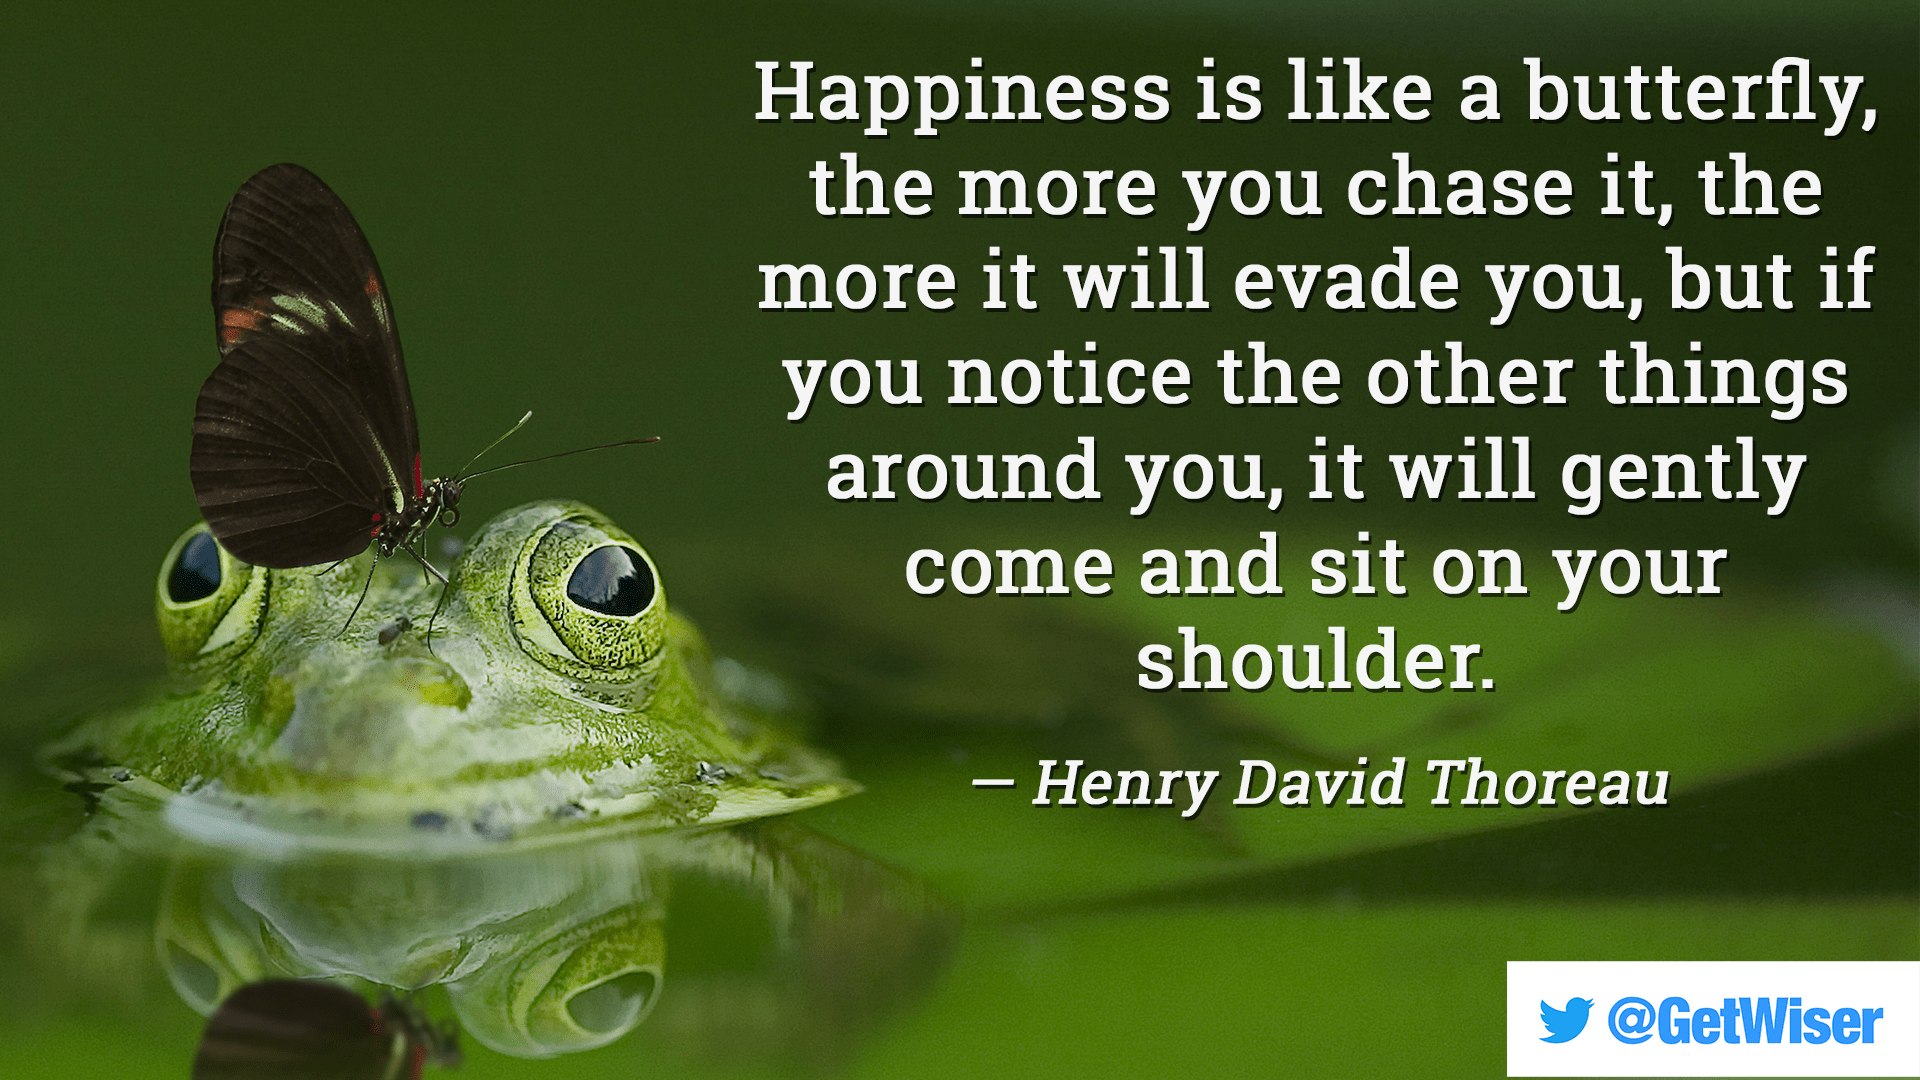 Happiness is like a butterfly, the more you chase it, the more it will evade you, but if you notice the other things around you, it will gently come and sit on your shoulder. — Henry https://inspirational.ly